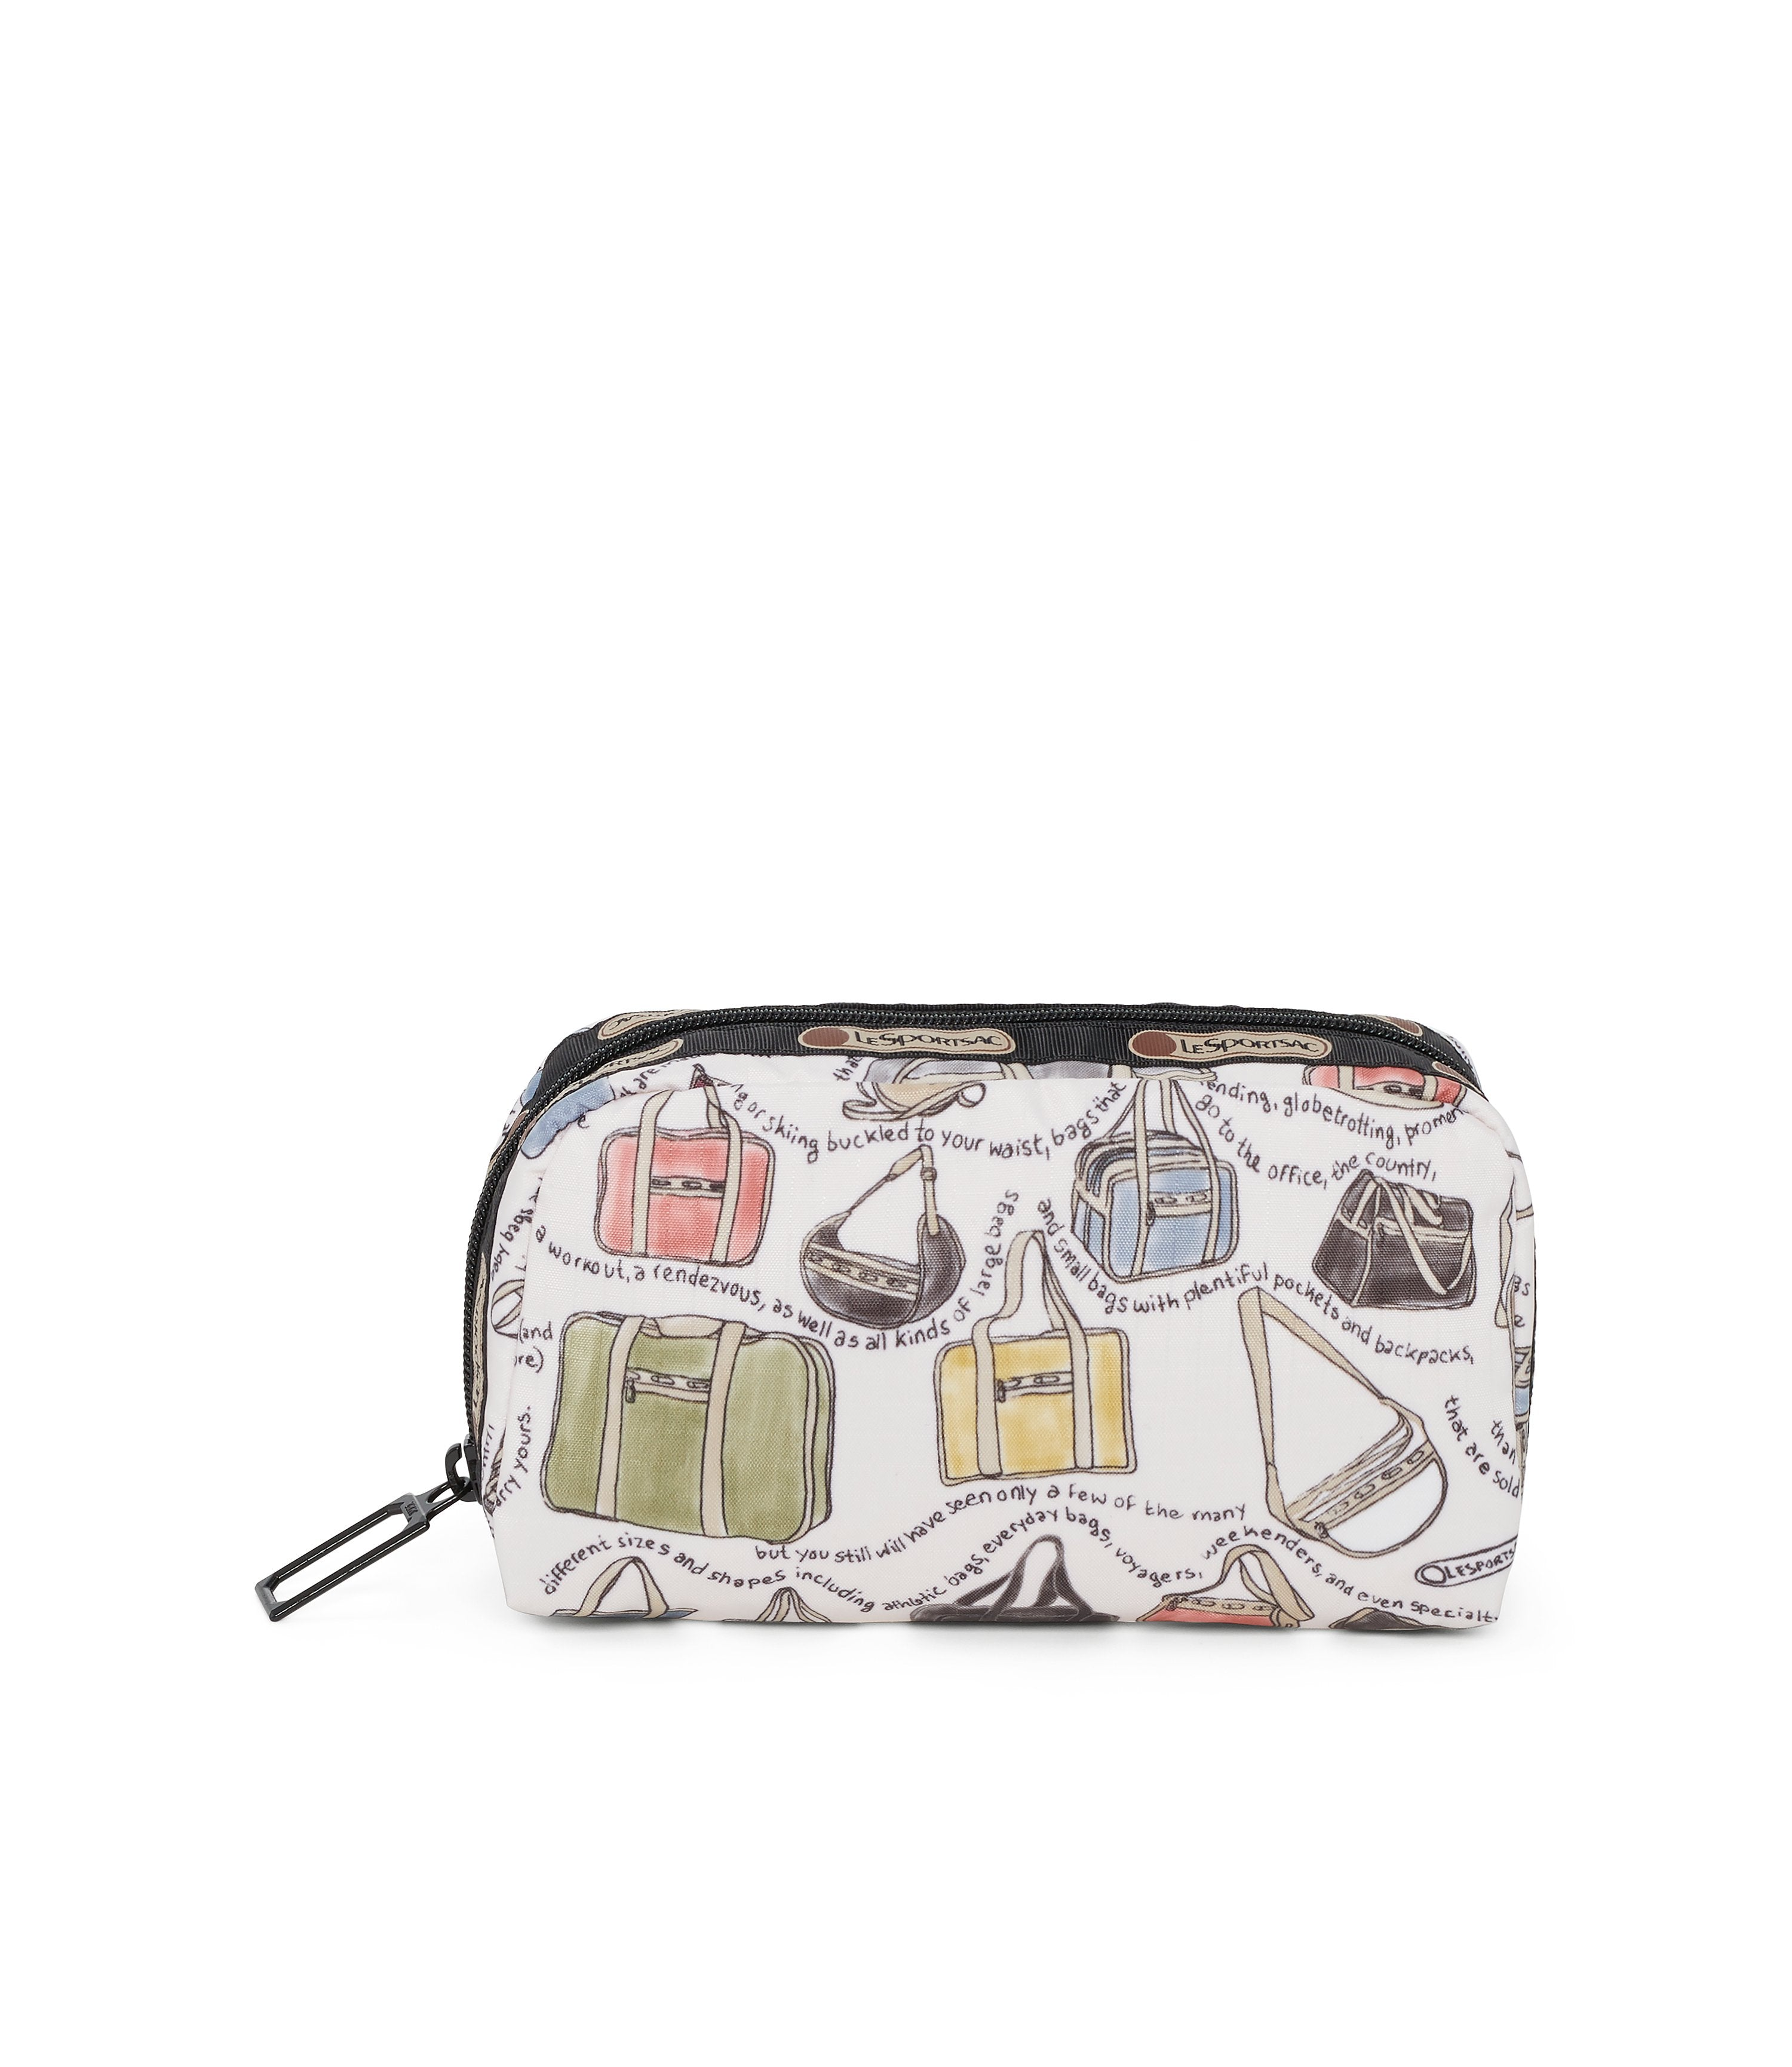 Rectangular Cosmetic, Accessories, Makeup and Cosmetic Bags, LeSportsac, LeSportsac History print